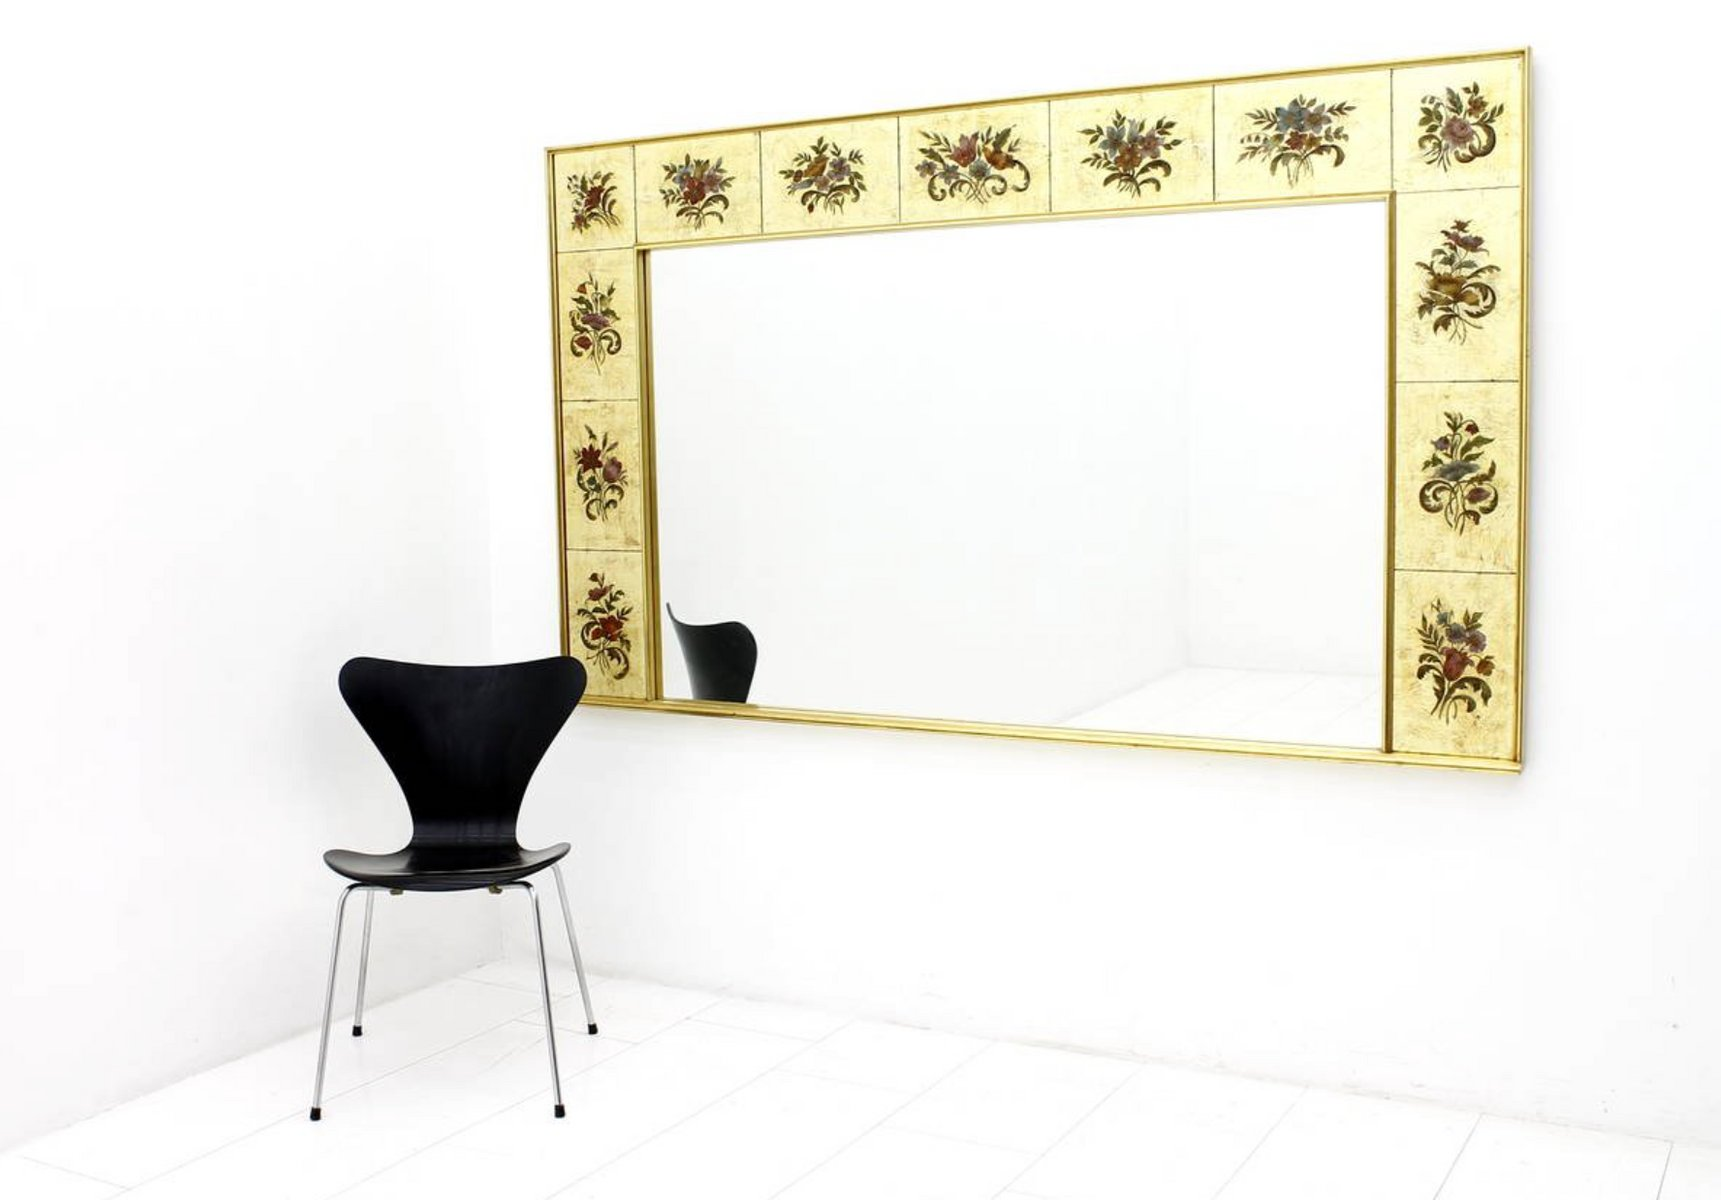 grand miroir mural d coratif 1980s en vente sur pamono. Black Bedroom Furniture Sets. Home Design Ideas